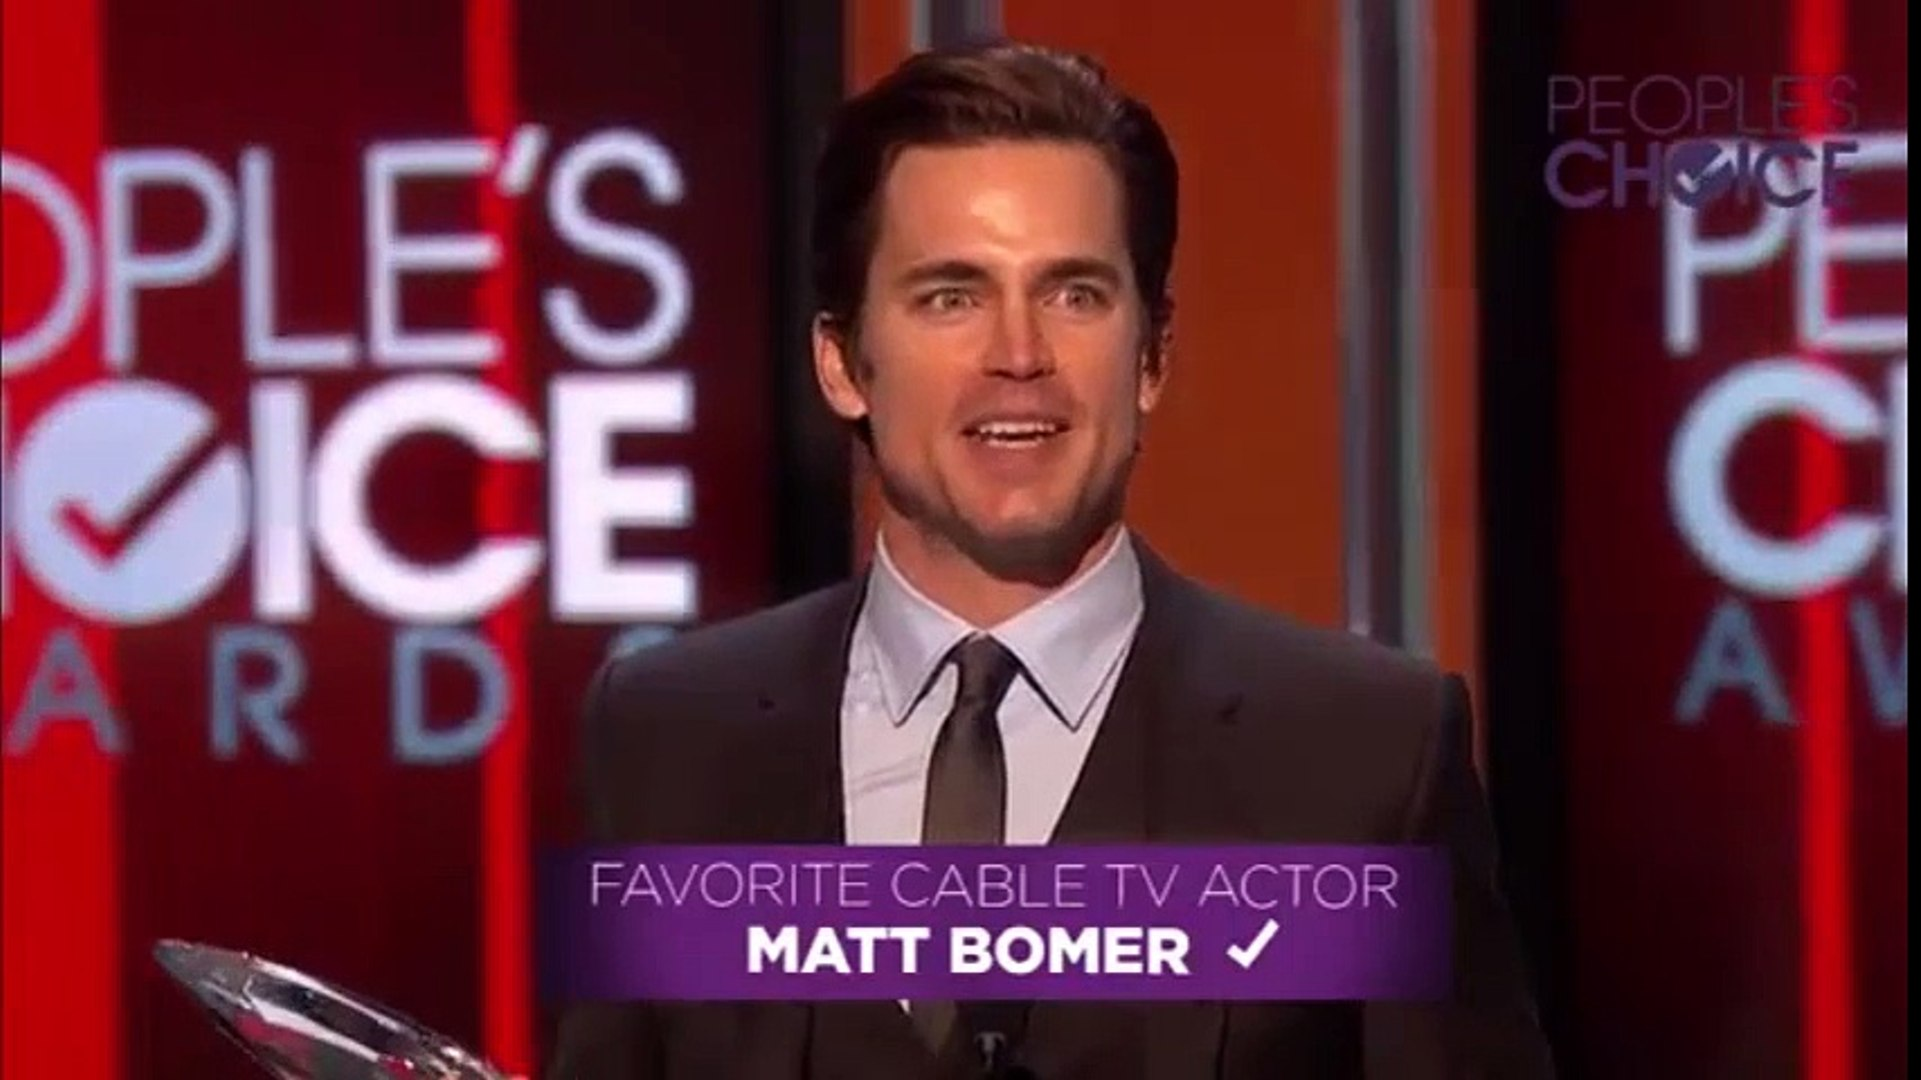 Favorite Cable TV Actor